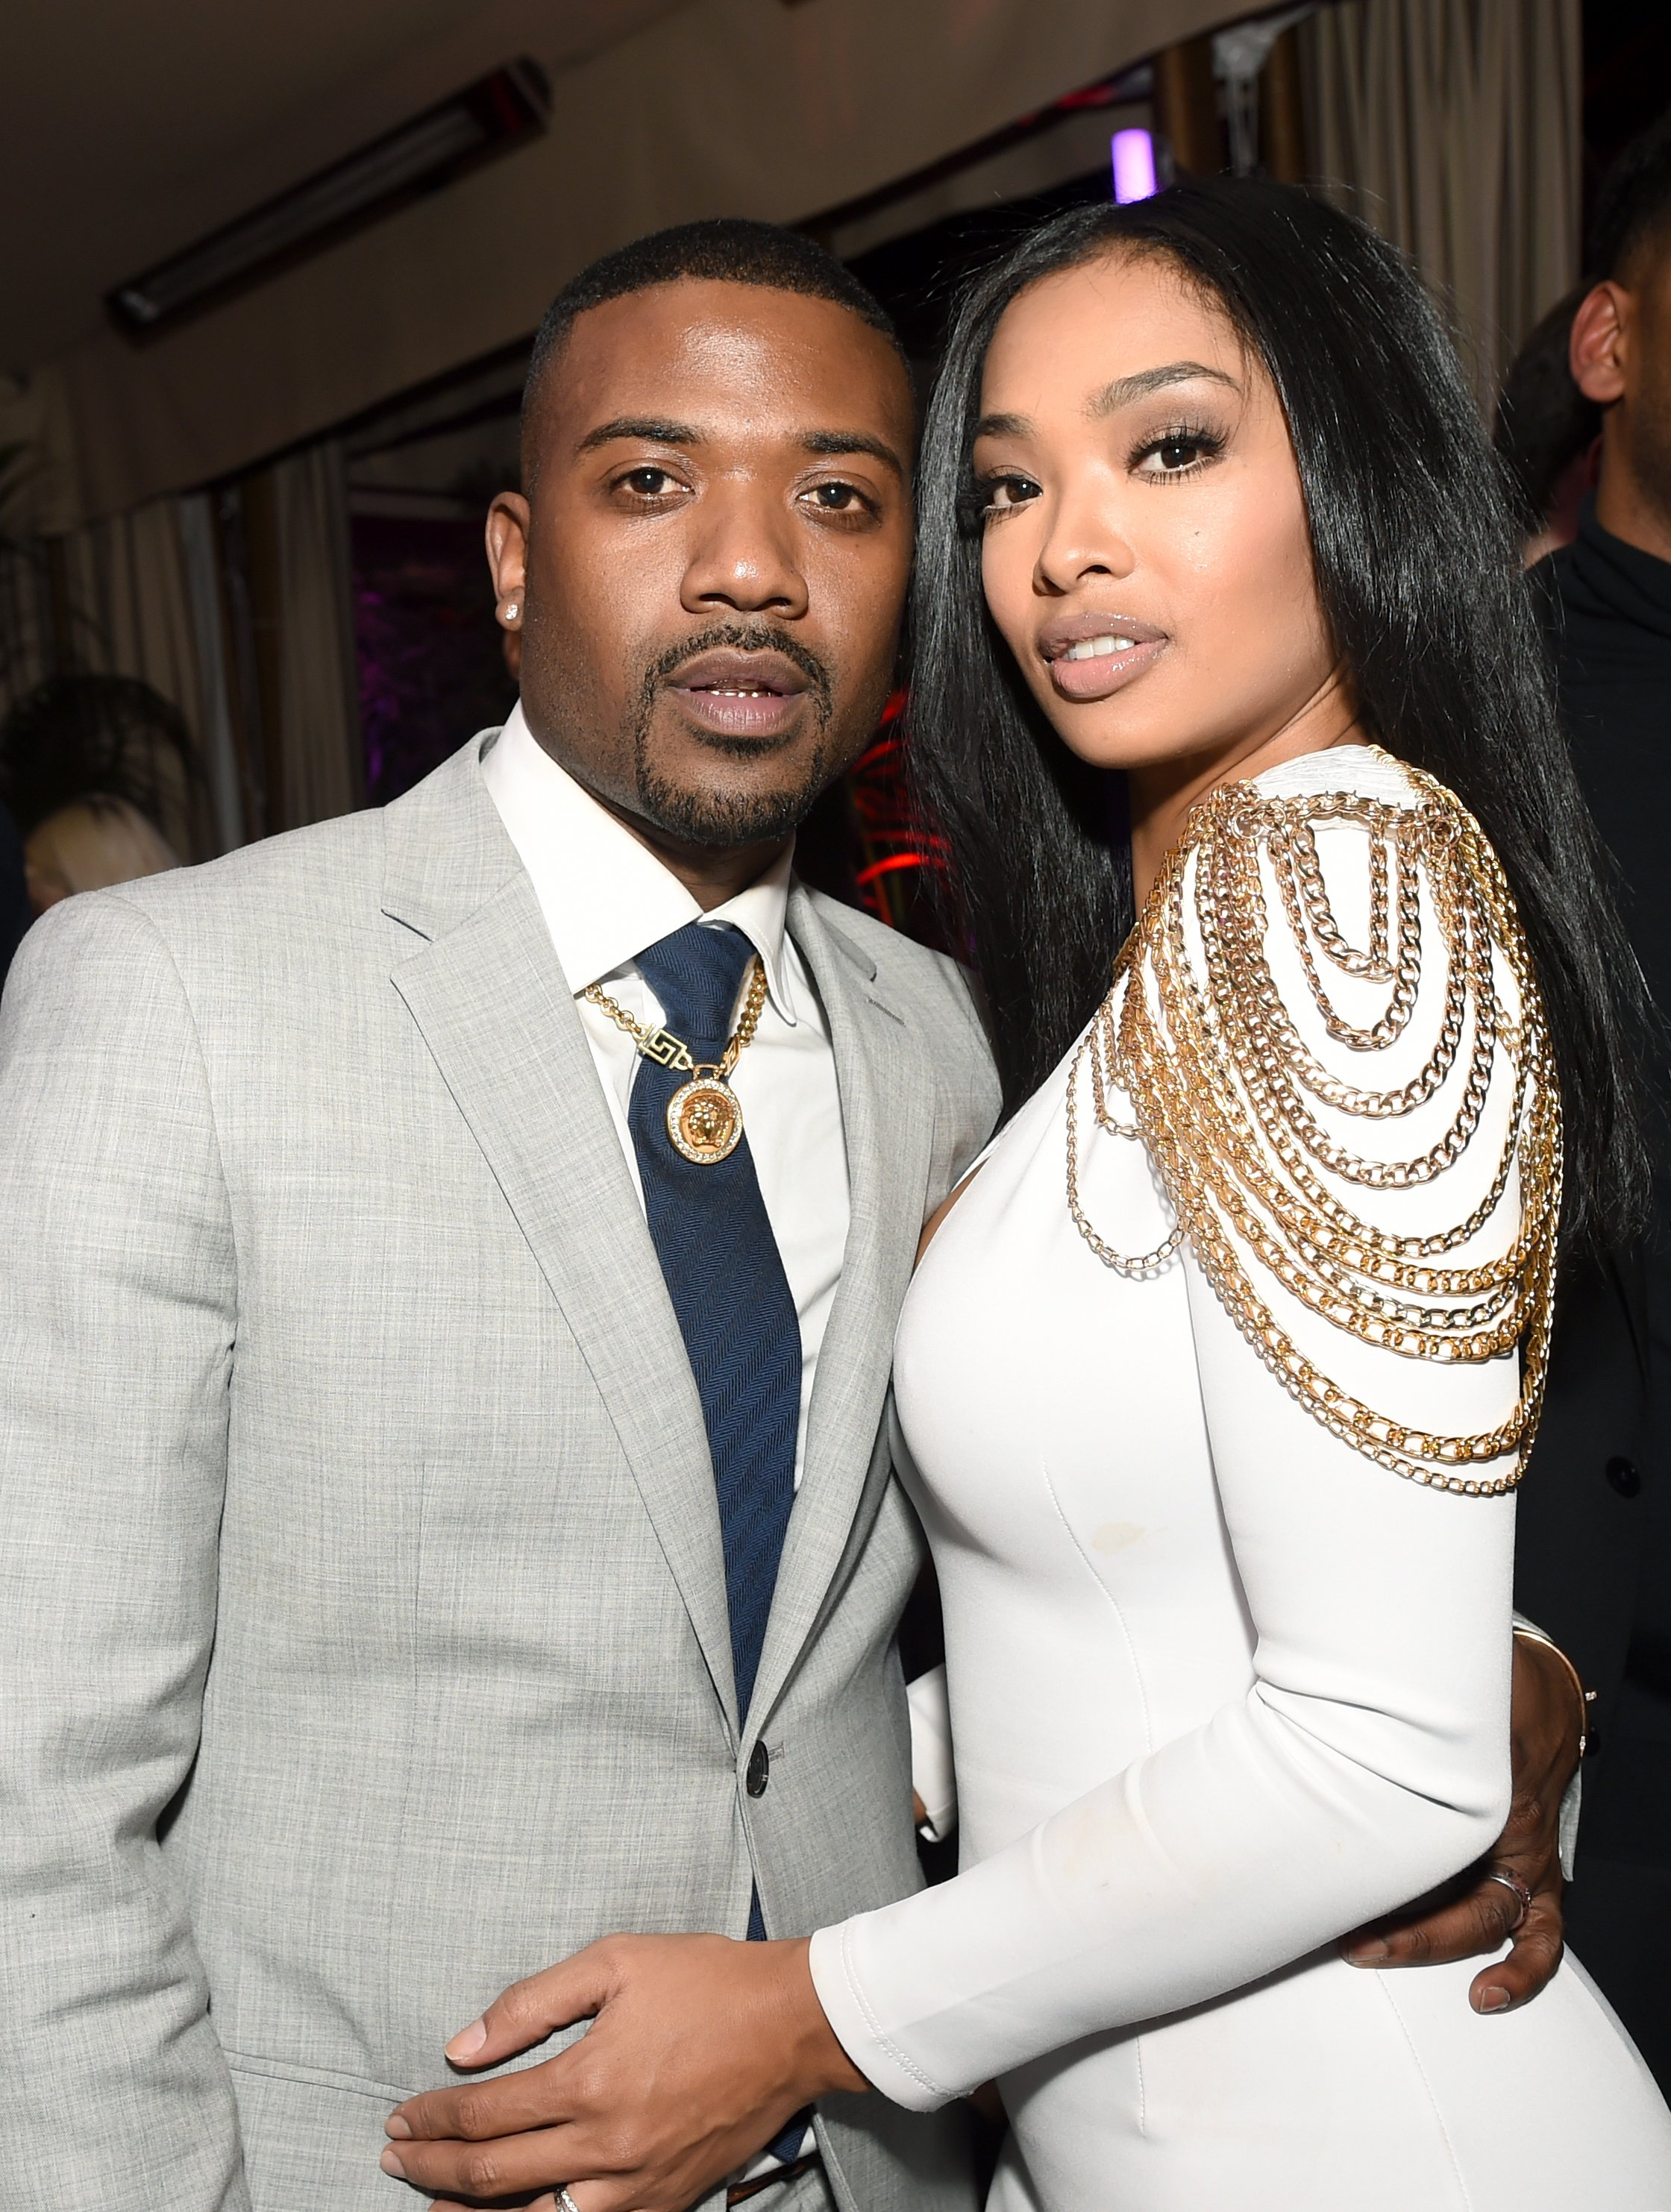 Ray J and wife Princess Love at a GQ-sponsored Grammy event in February 2017. | Source: Getty Images